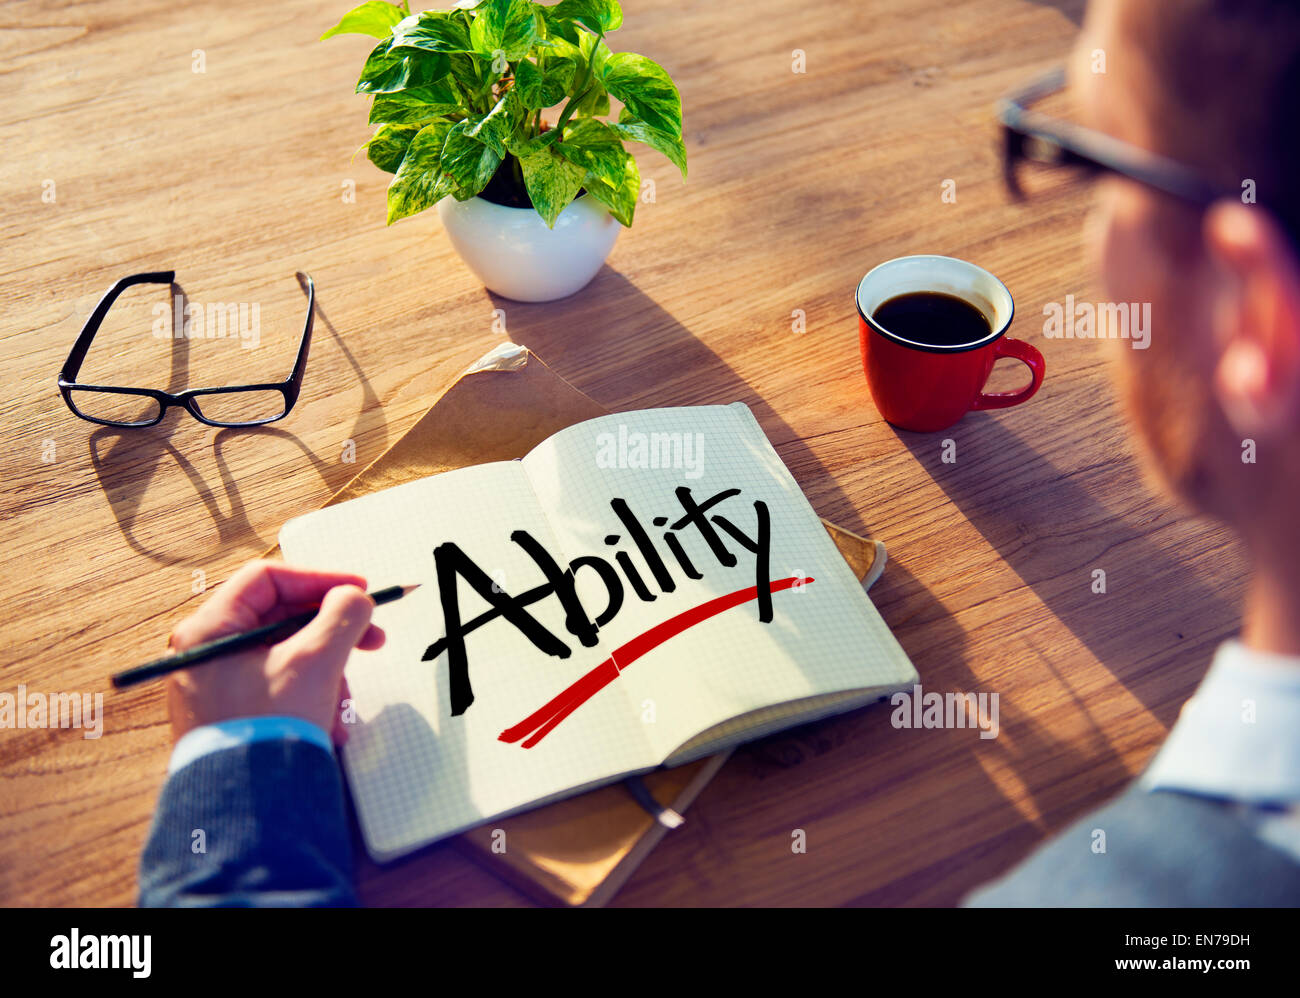 Businessman Brainstorming About Ability - Stock Image